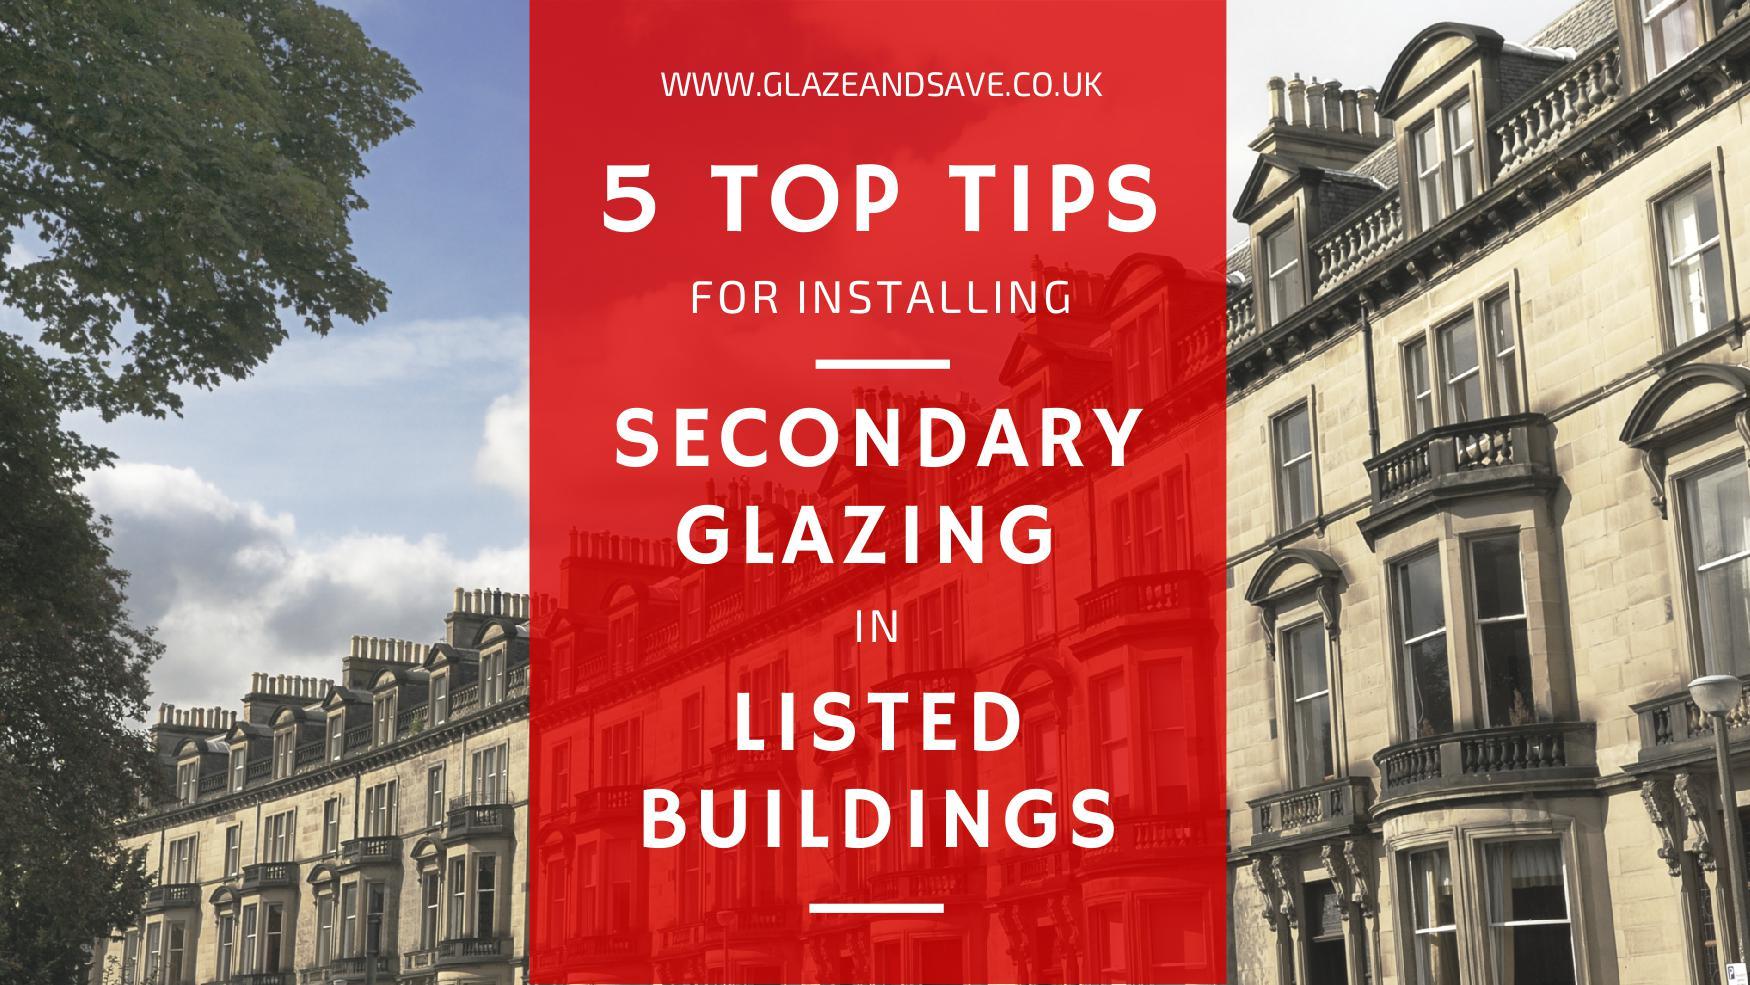 Window Glazing Tips : Top tips for installing secondary glazing in listed